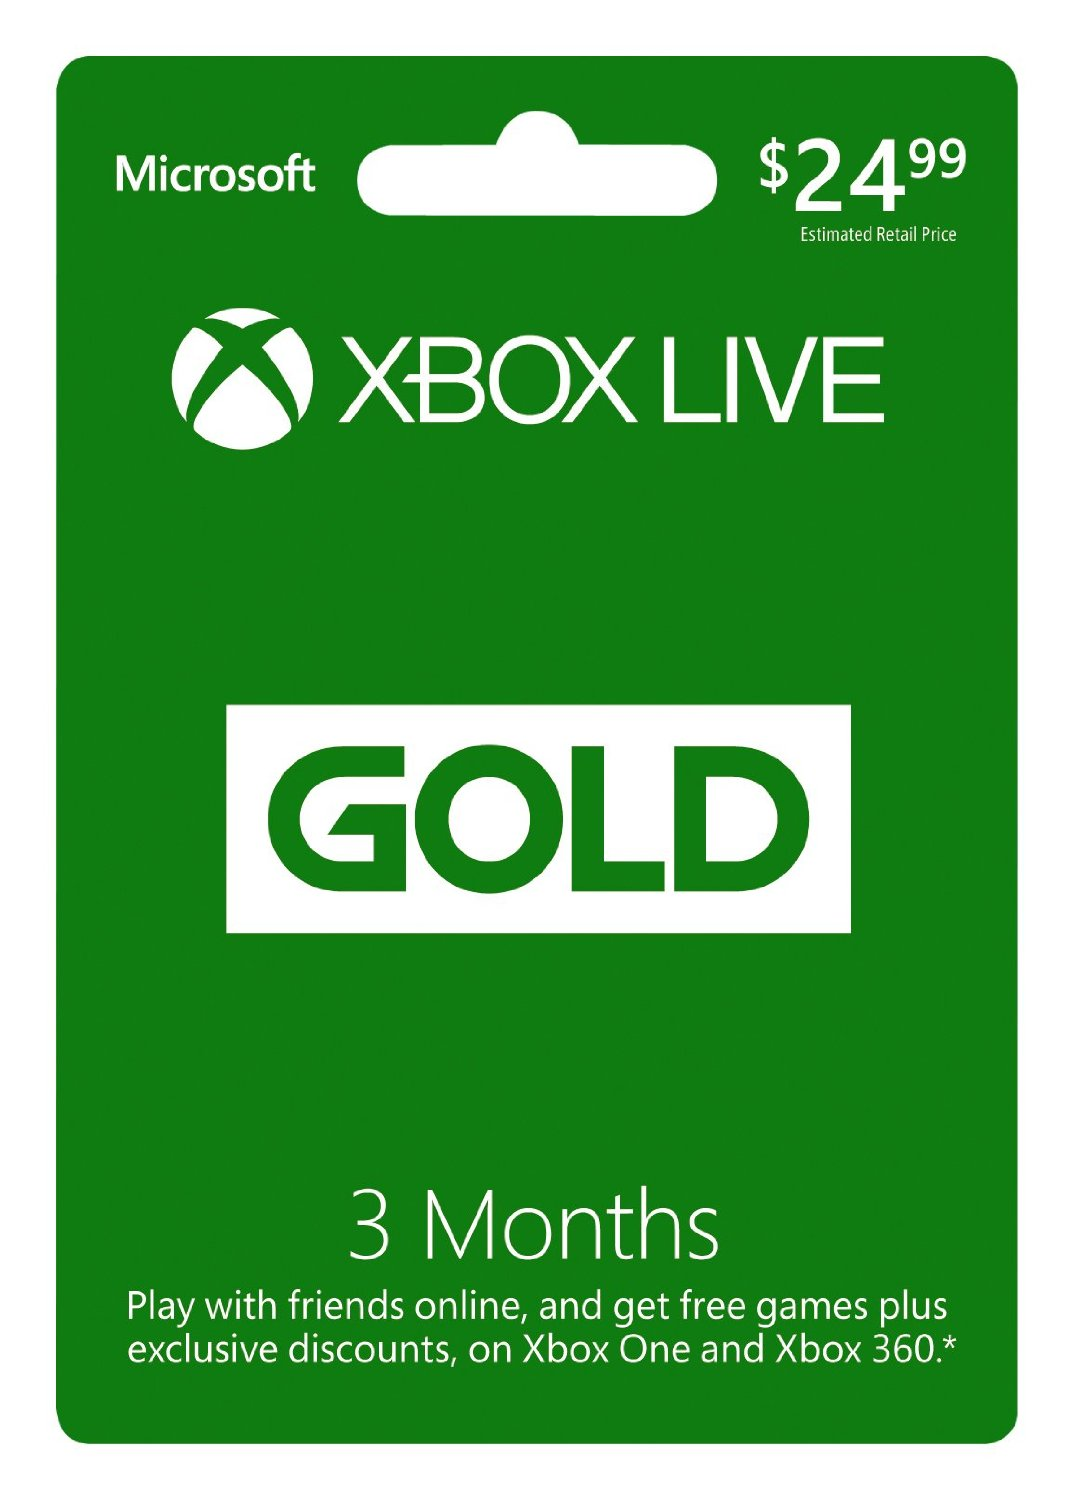 Xbox Live Gold 3 months (GLOBAL) + DISCOUNTS